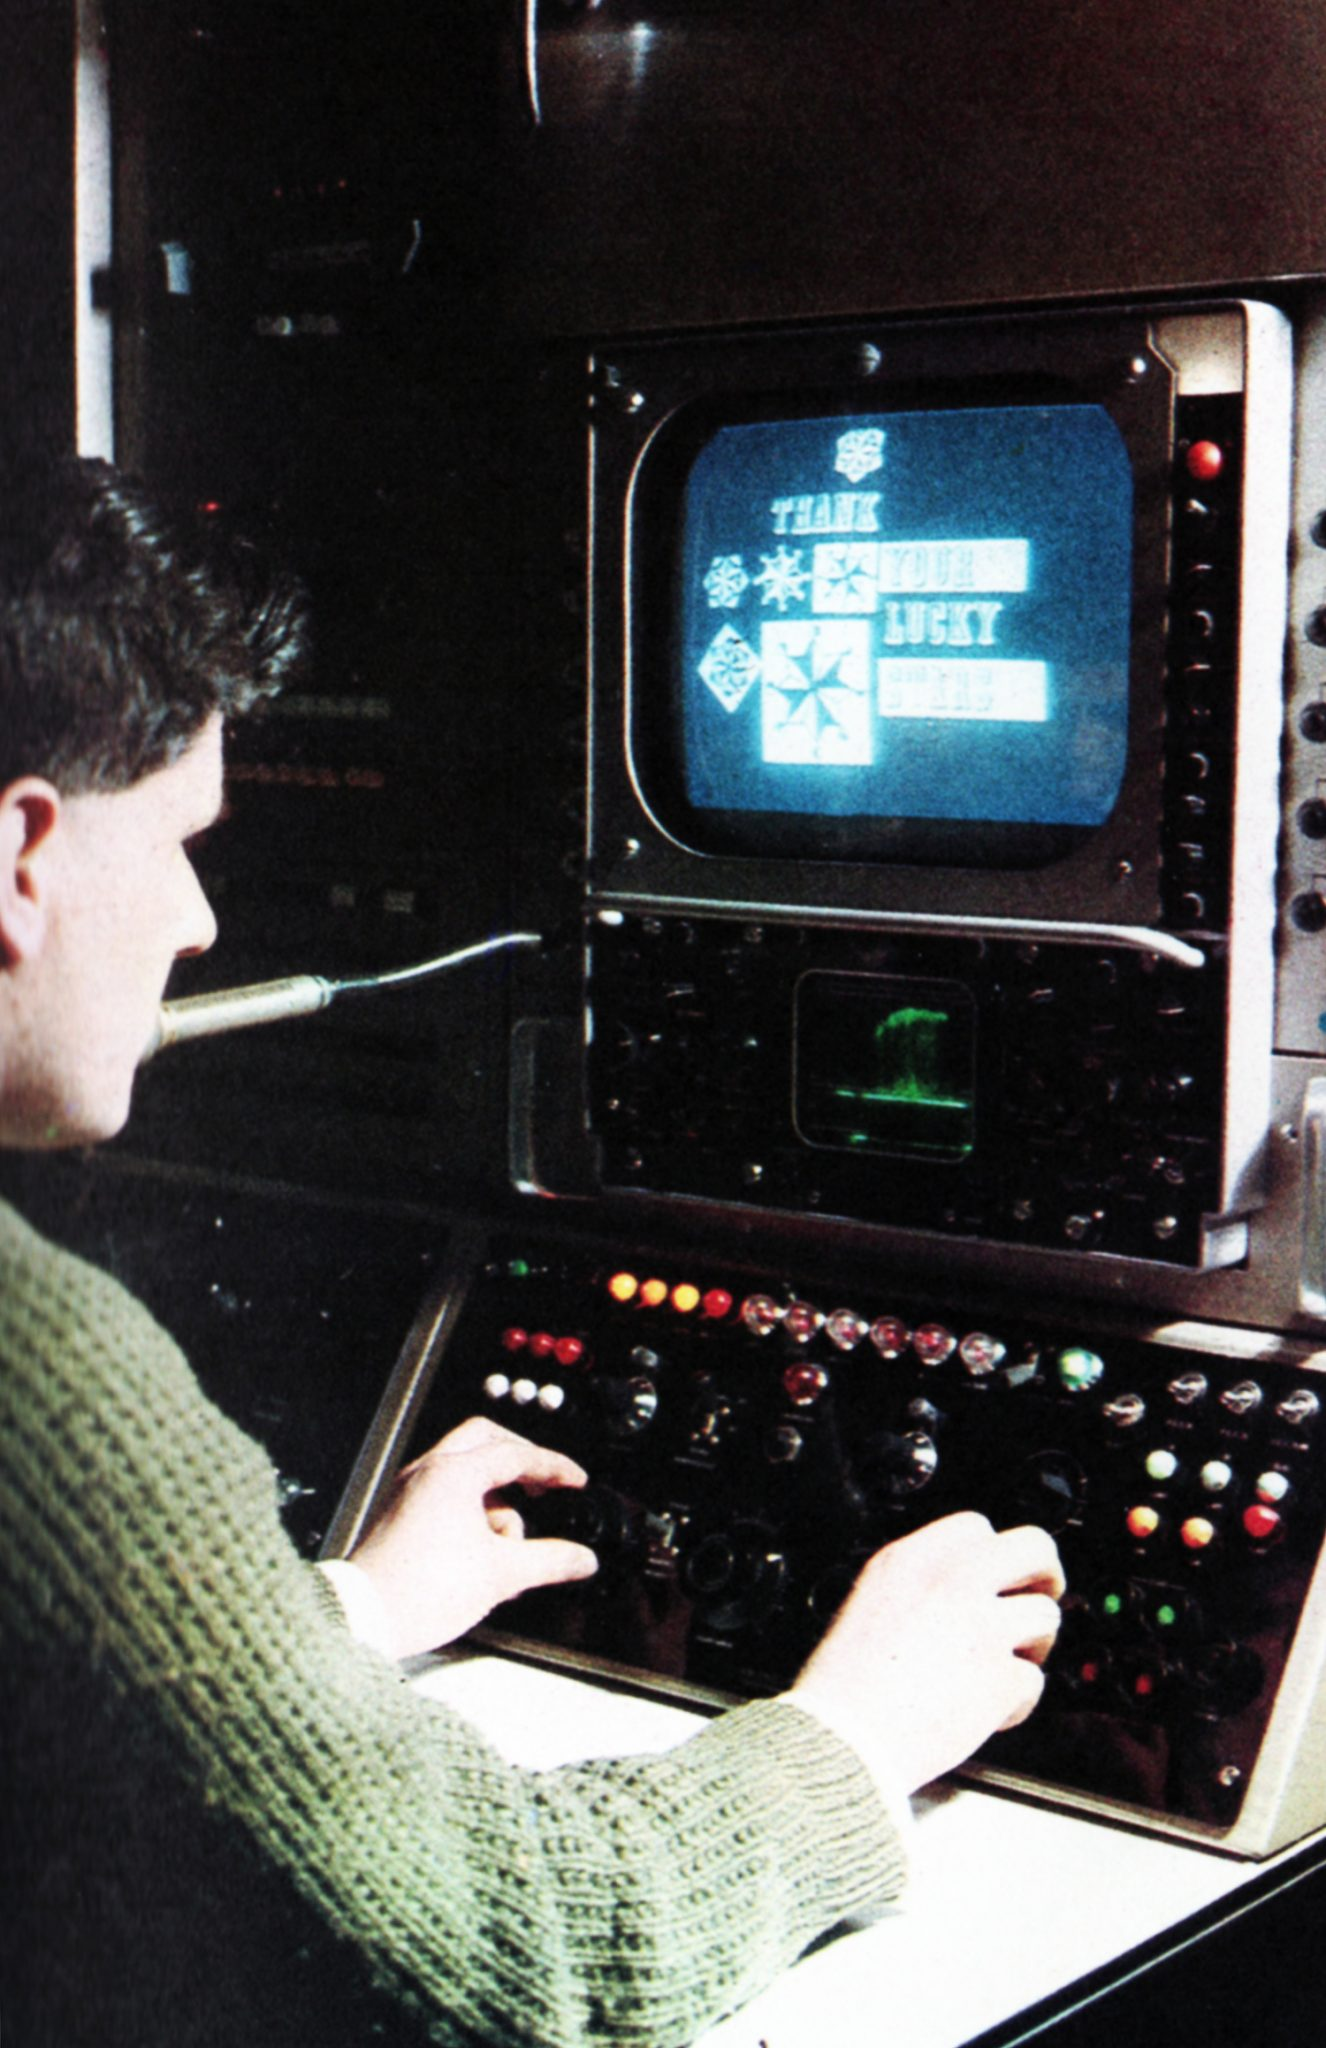 Telecine control; with supervisor monitoring picture and sound output from his suit. The allied equipment can scan 35 and 16 mm film, slides, caption cards, roller captions, and VTR clock; all selected and operated from the point of picture destination, a studio control suite or Master Control.